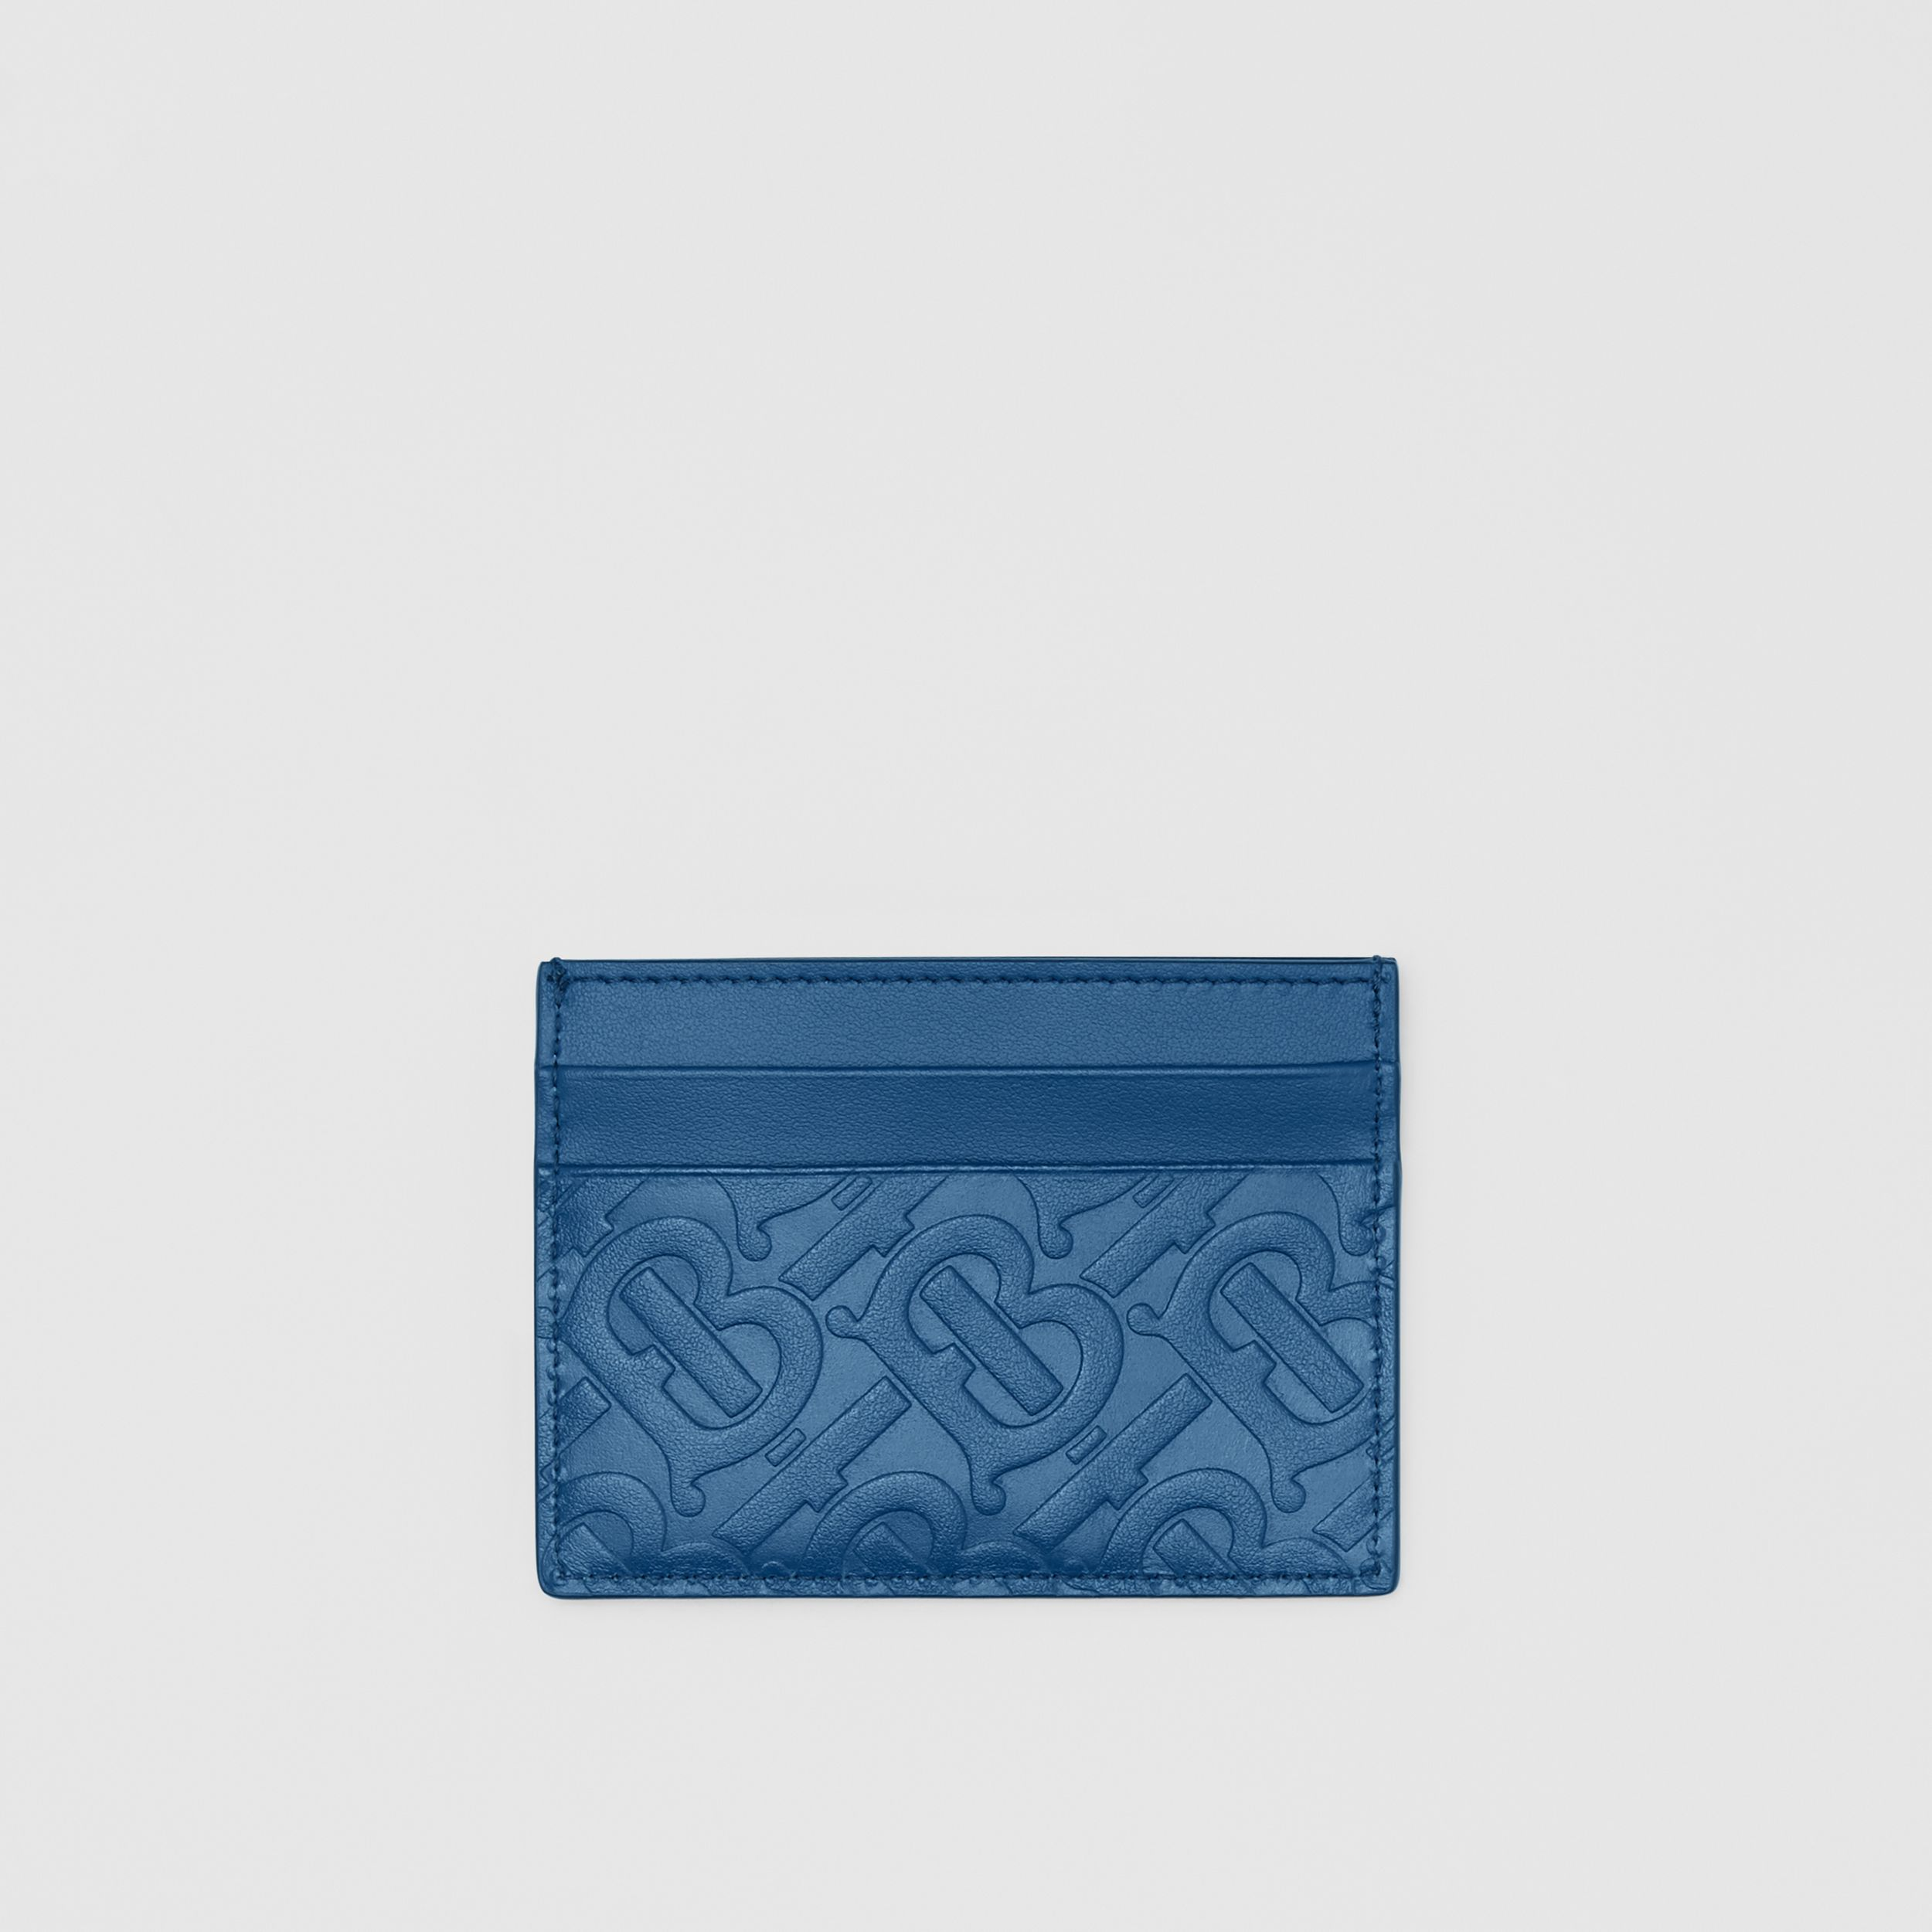 Monogram Leather Card Case in Pale Canvas Blue - Men | Burberry Canada - 1